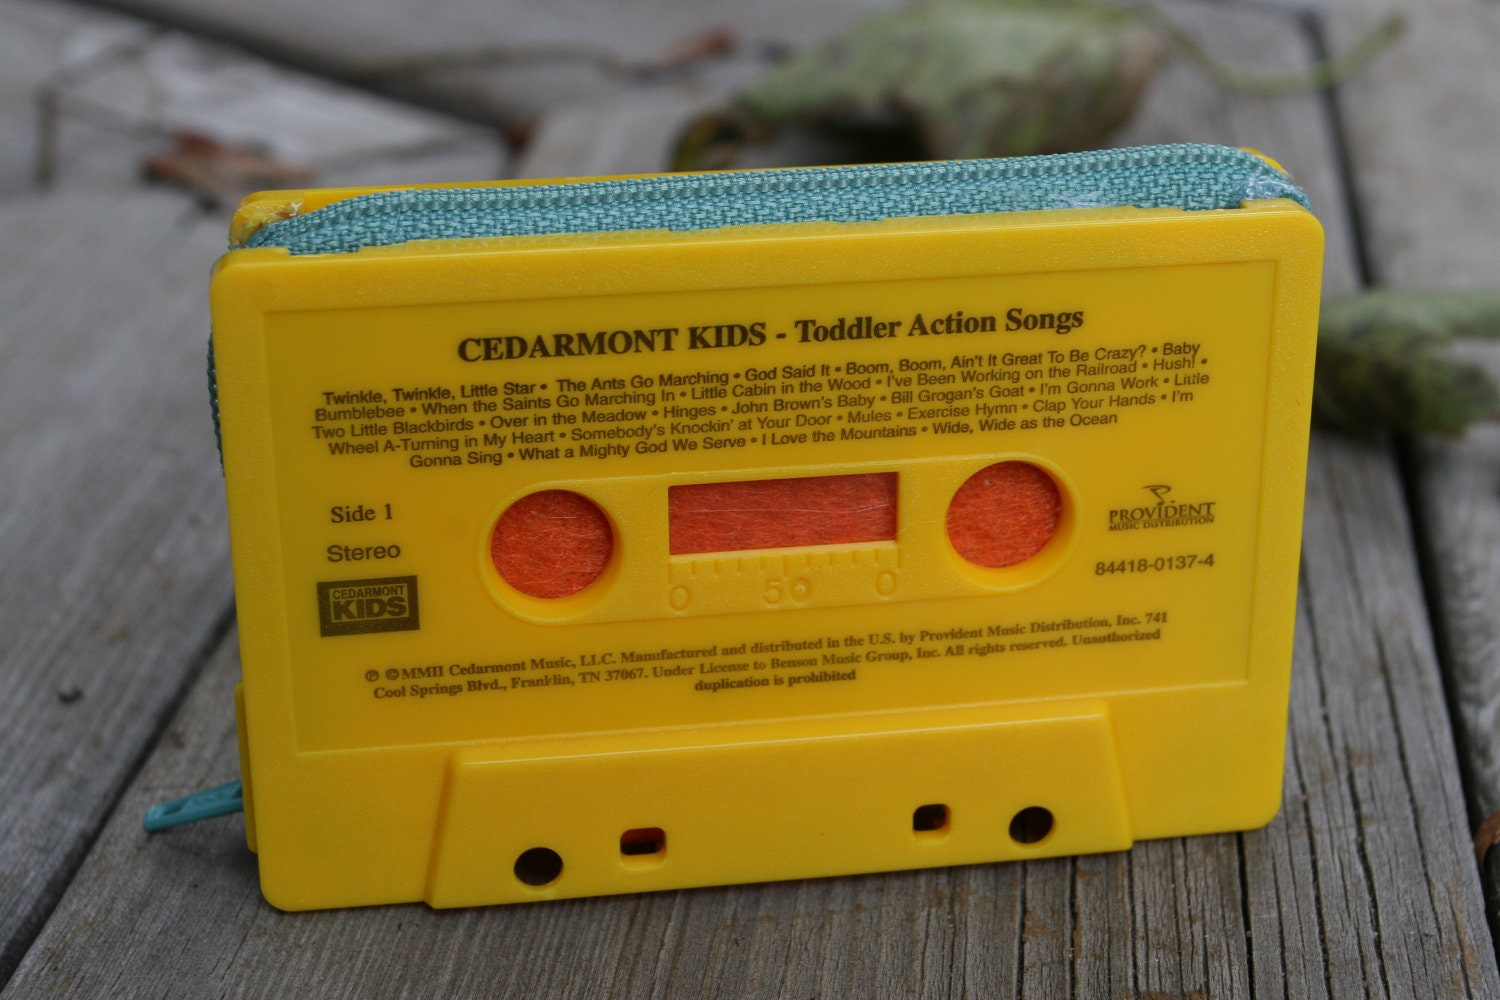 Cedarmont Kids- Toddler Action Songs- cassette tape wallet